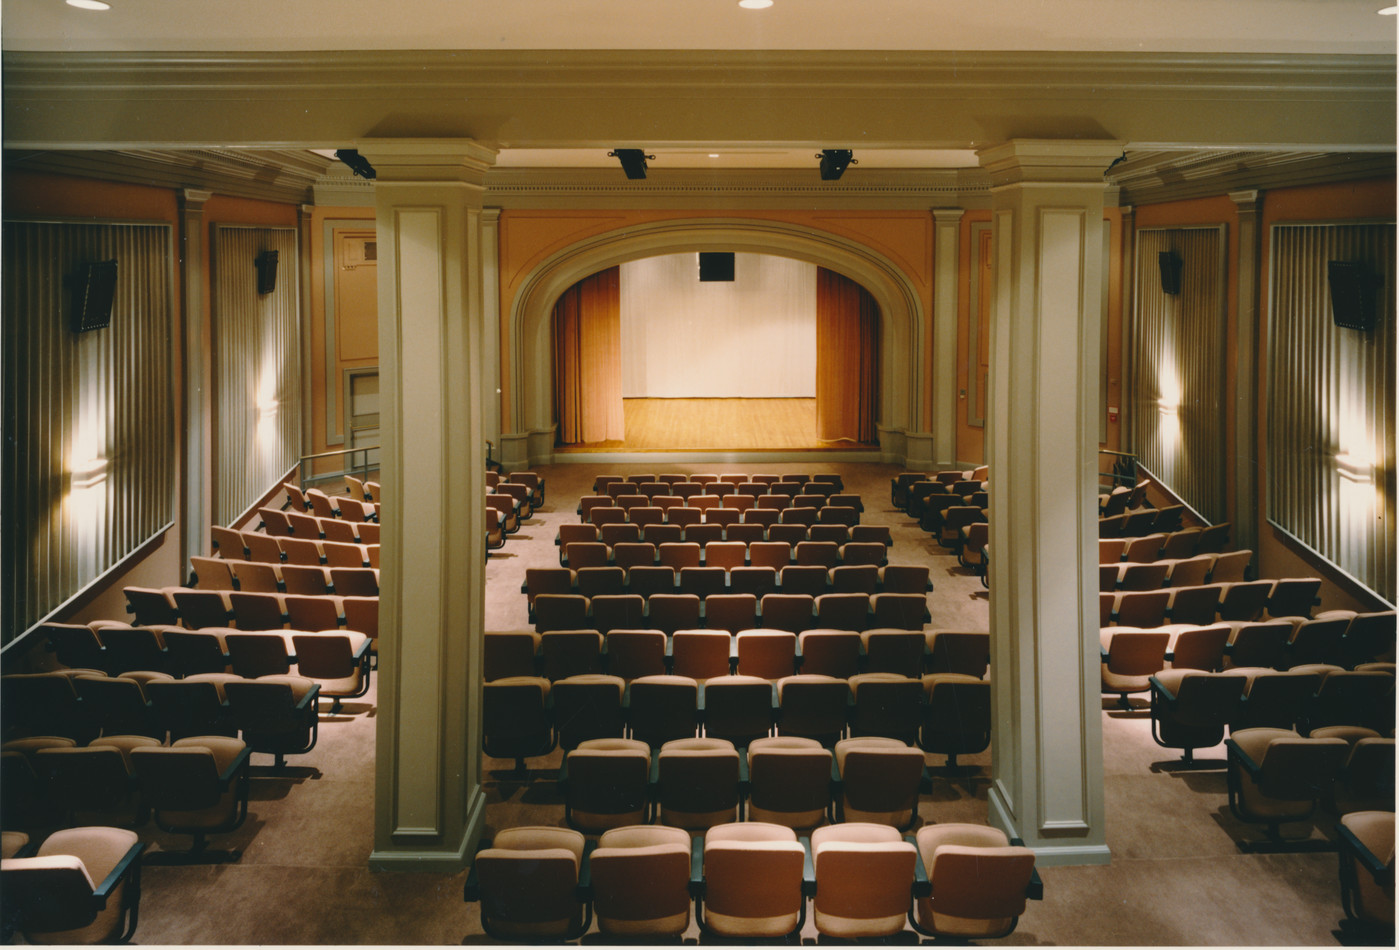 Interior view of the Performance Hall at the museum.